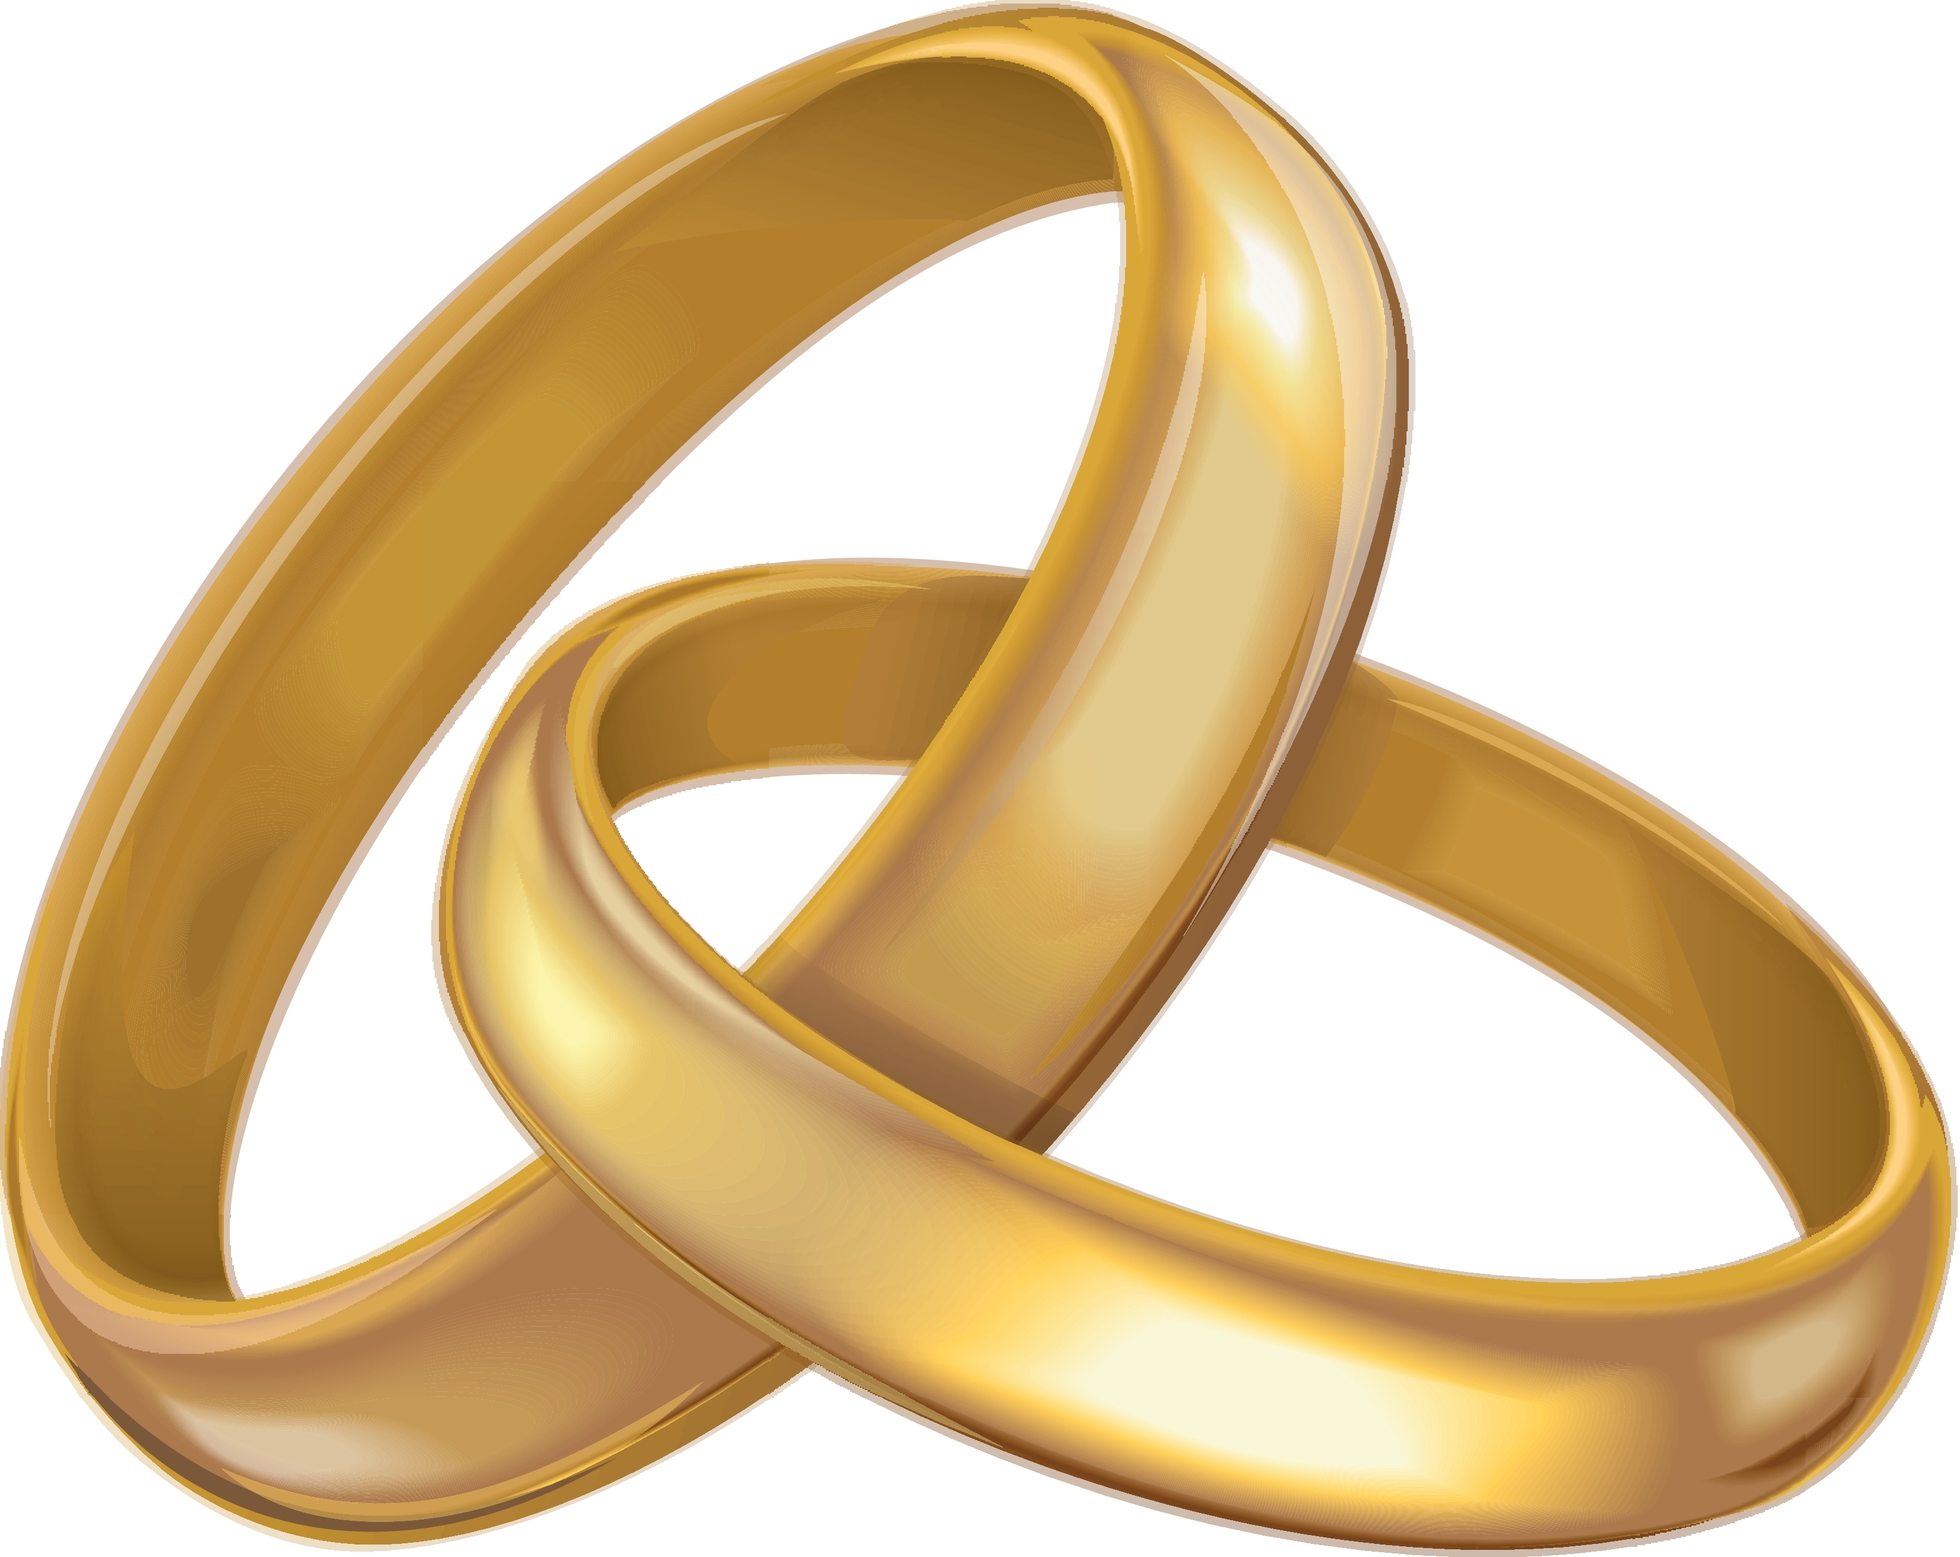 ring-clipart-wedding-rings-clipart-1.jpg